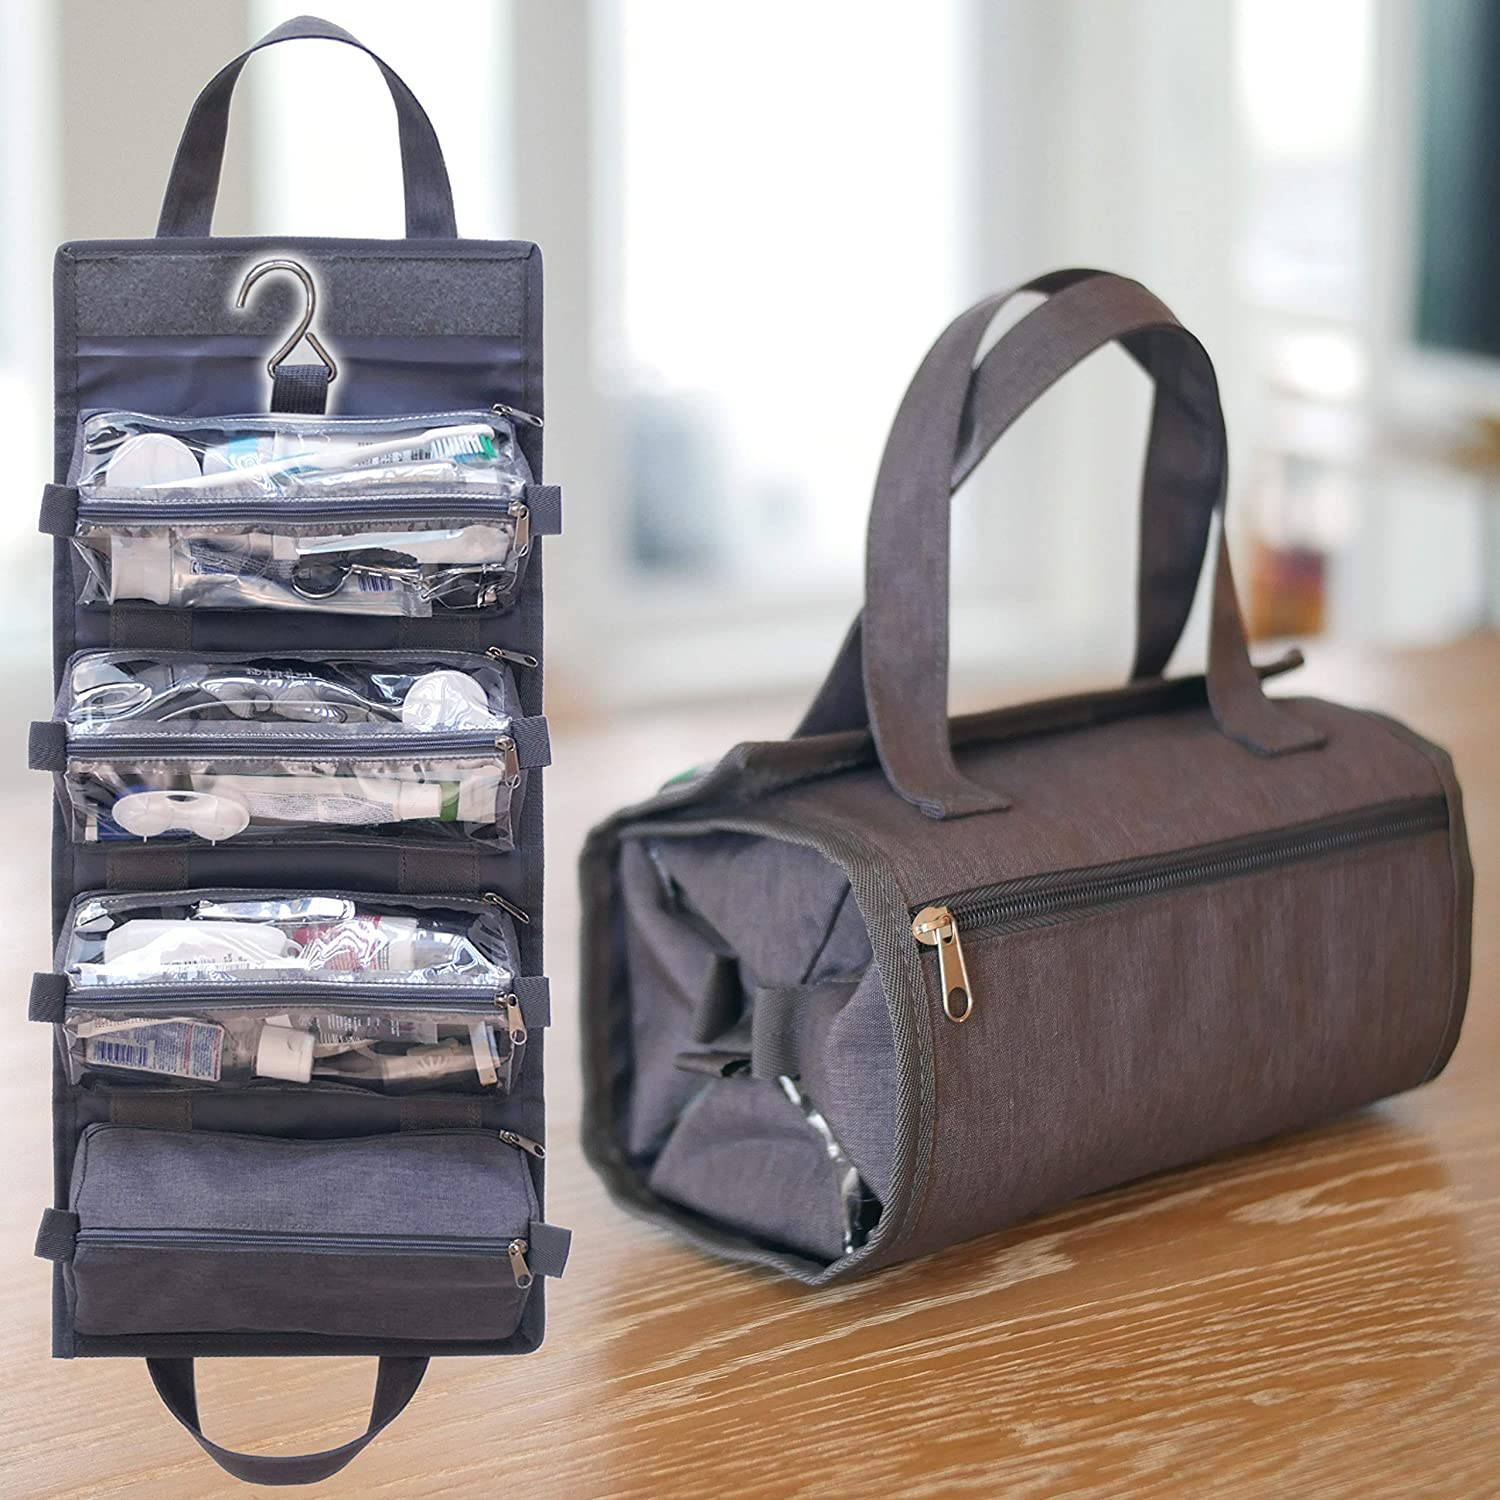 Hanging Toiletry Travel Bag Organizer Roll Up Cosmetic Kit Hook ... 2c6ad8763611a